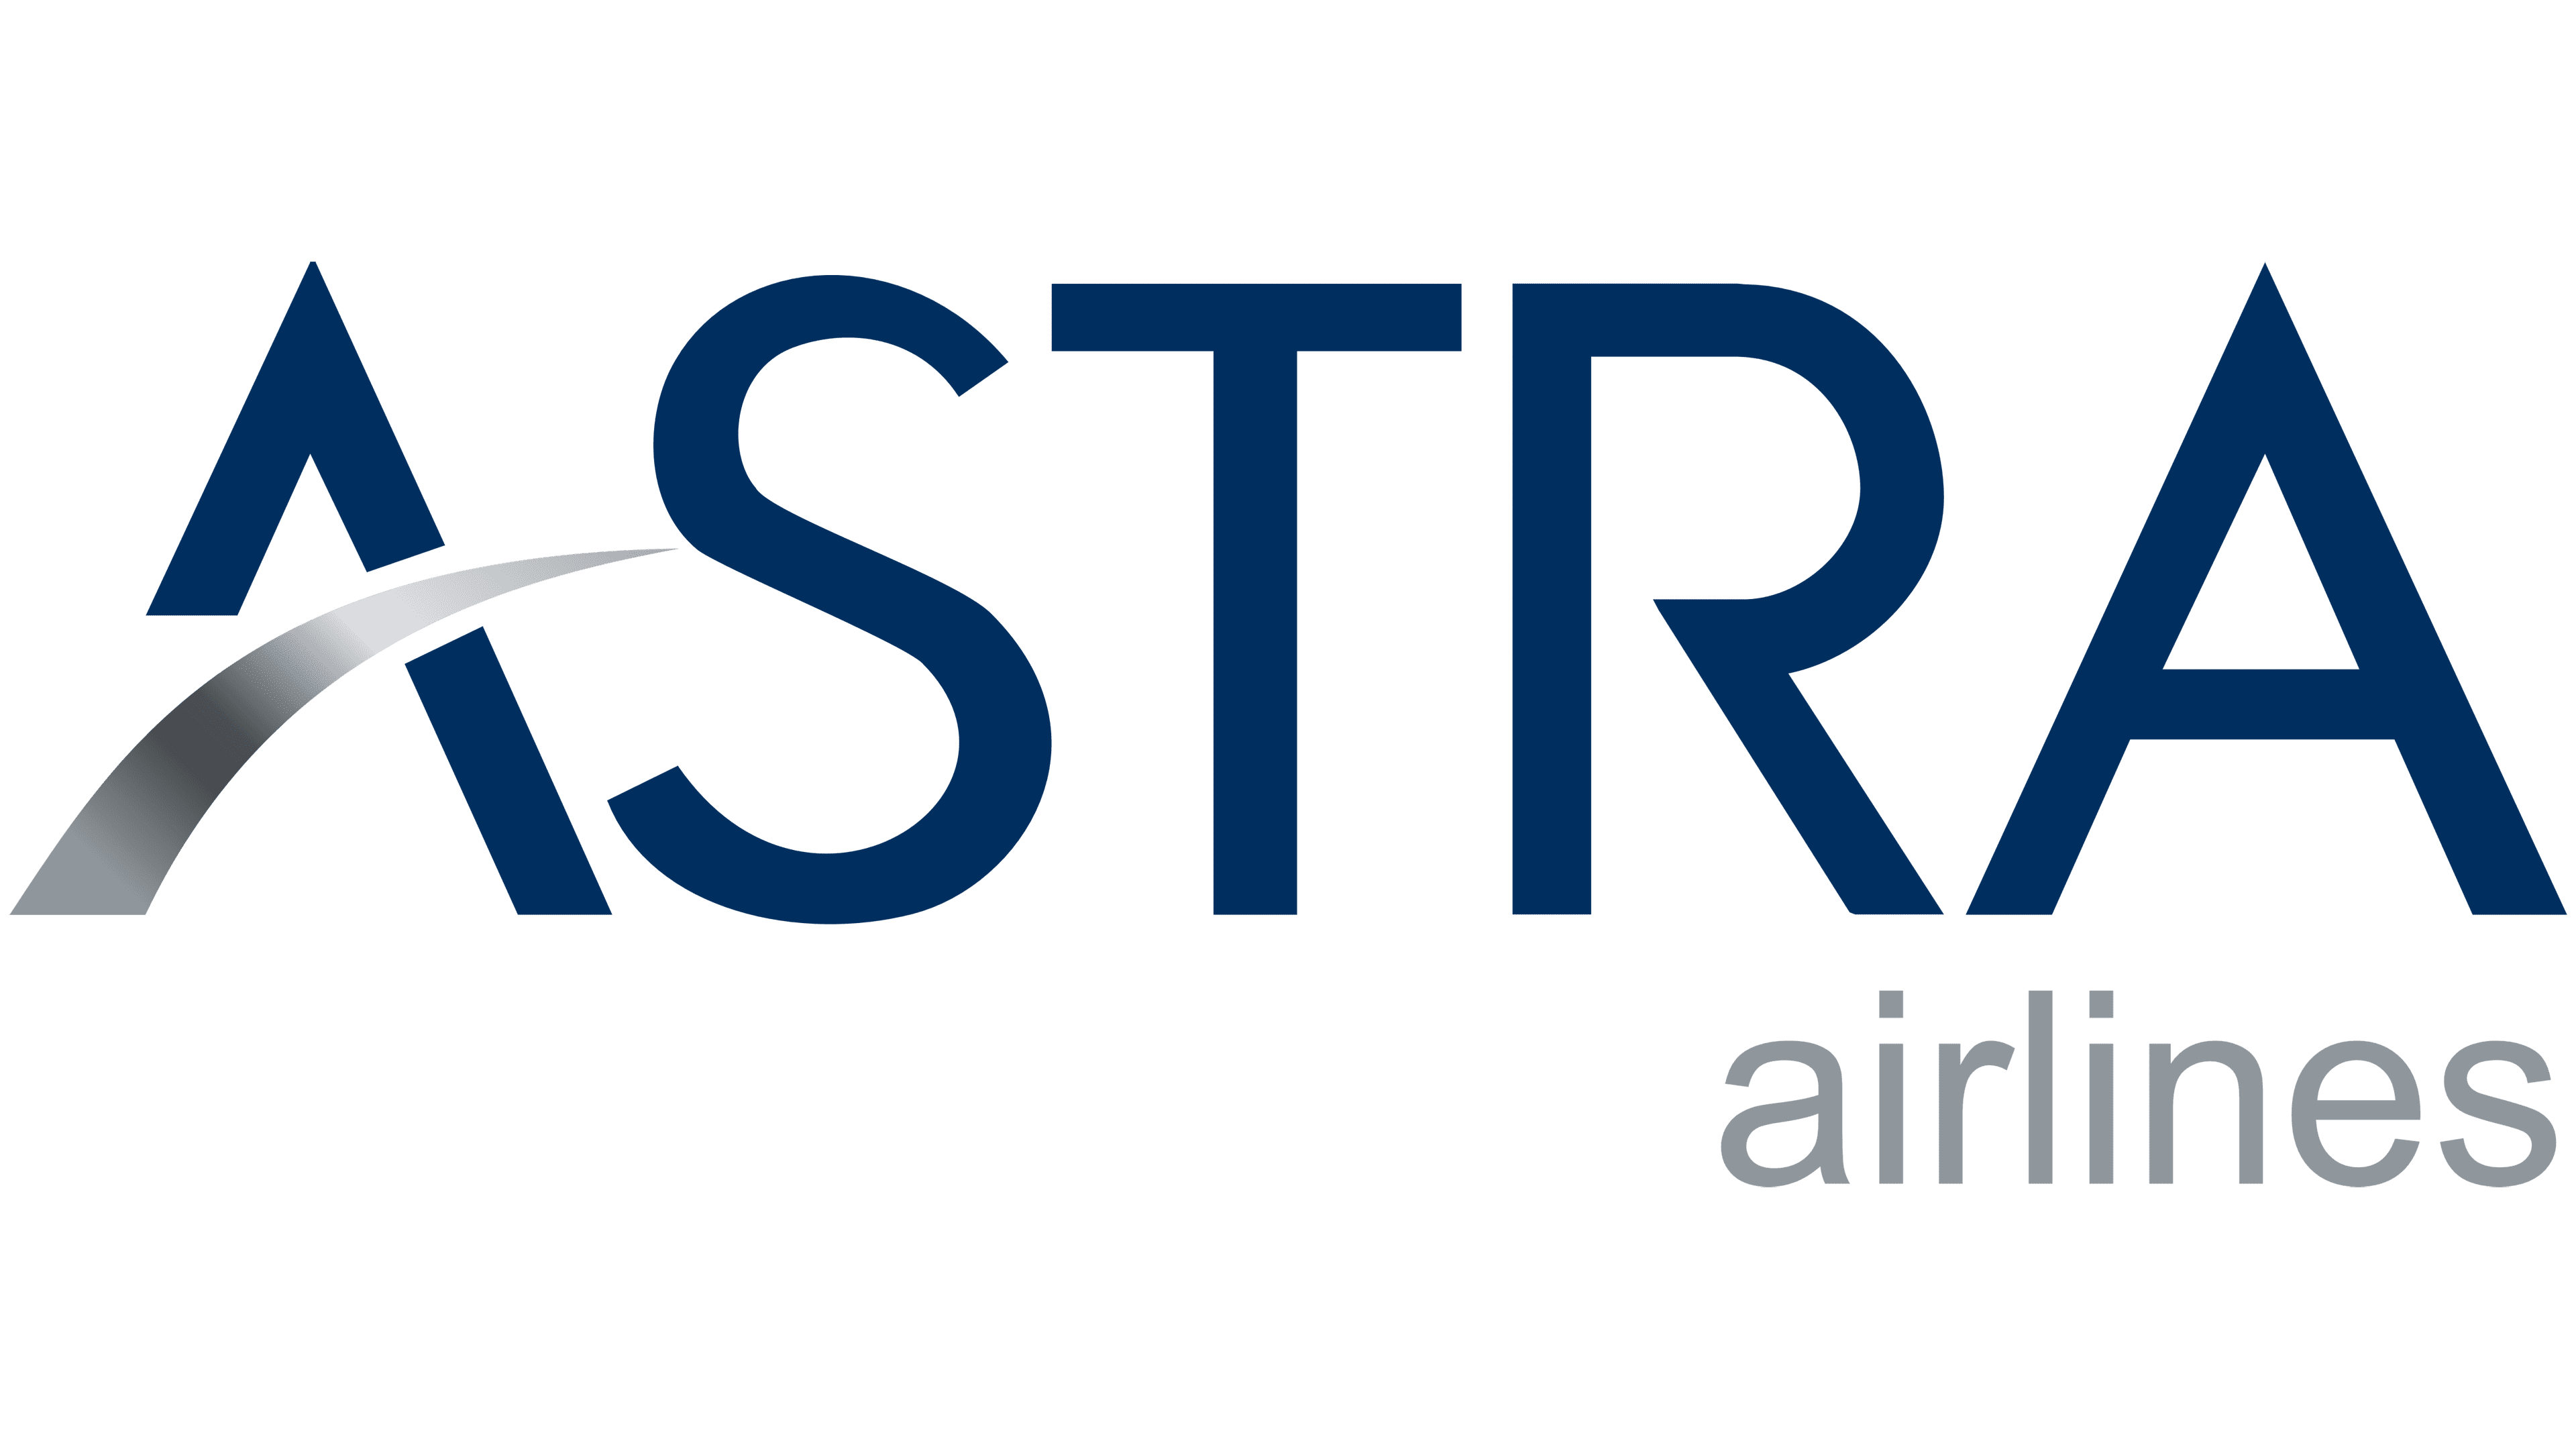 Astra Airlines Logo Logo